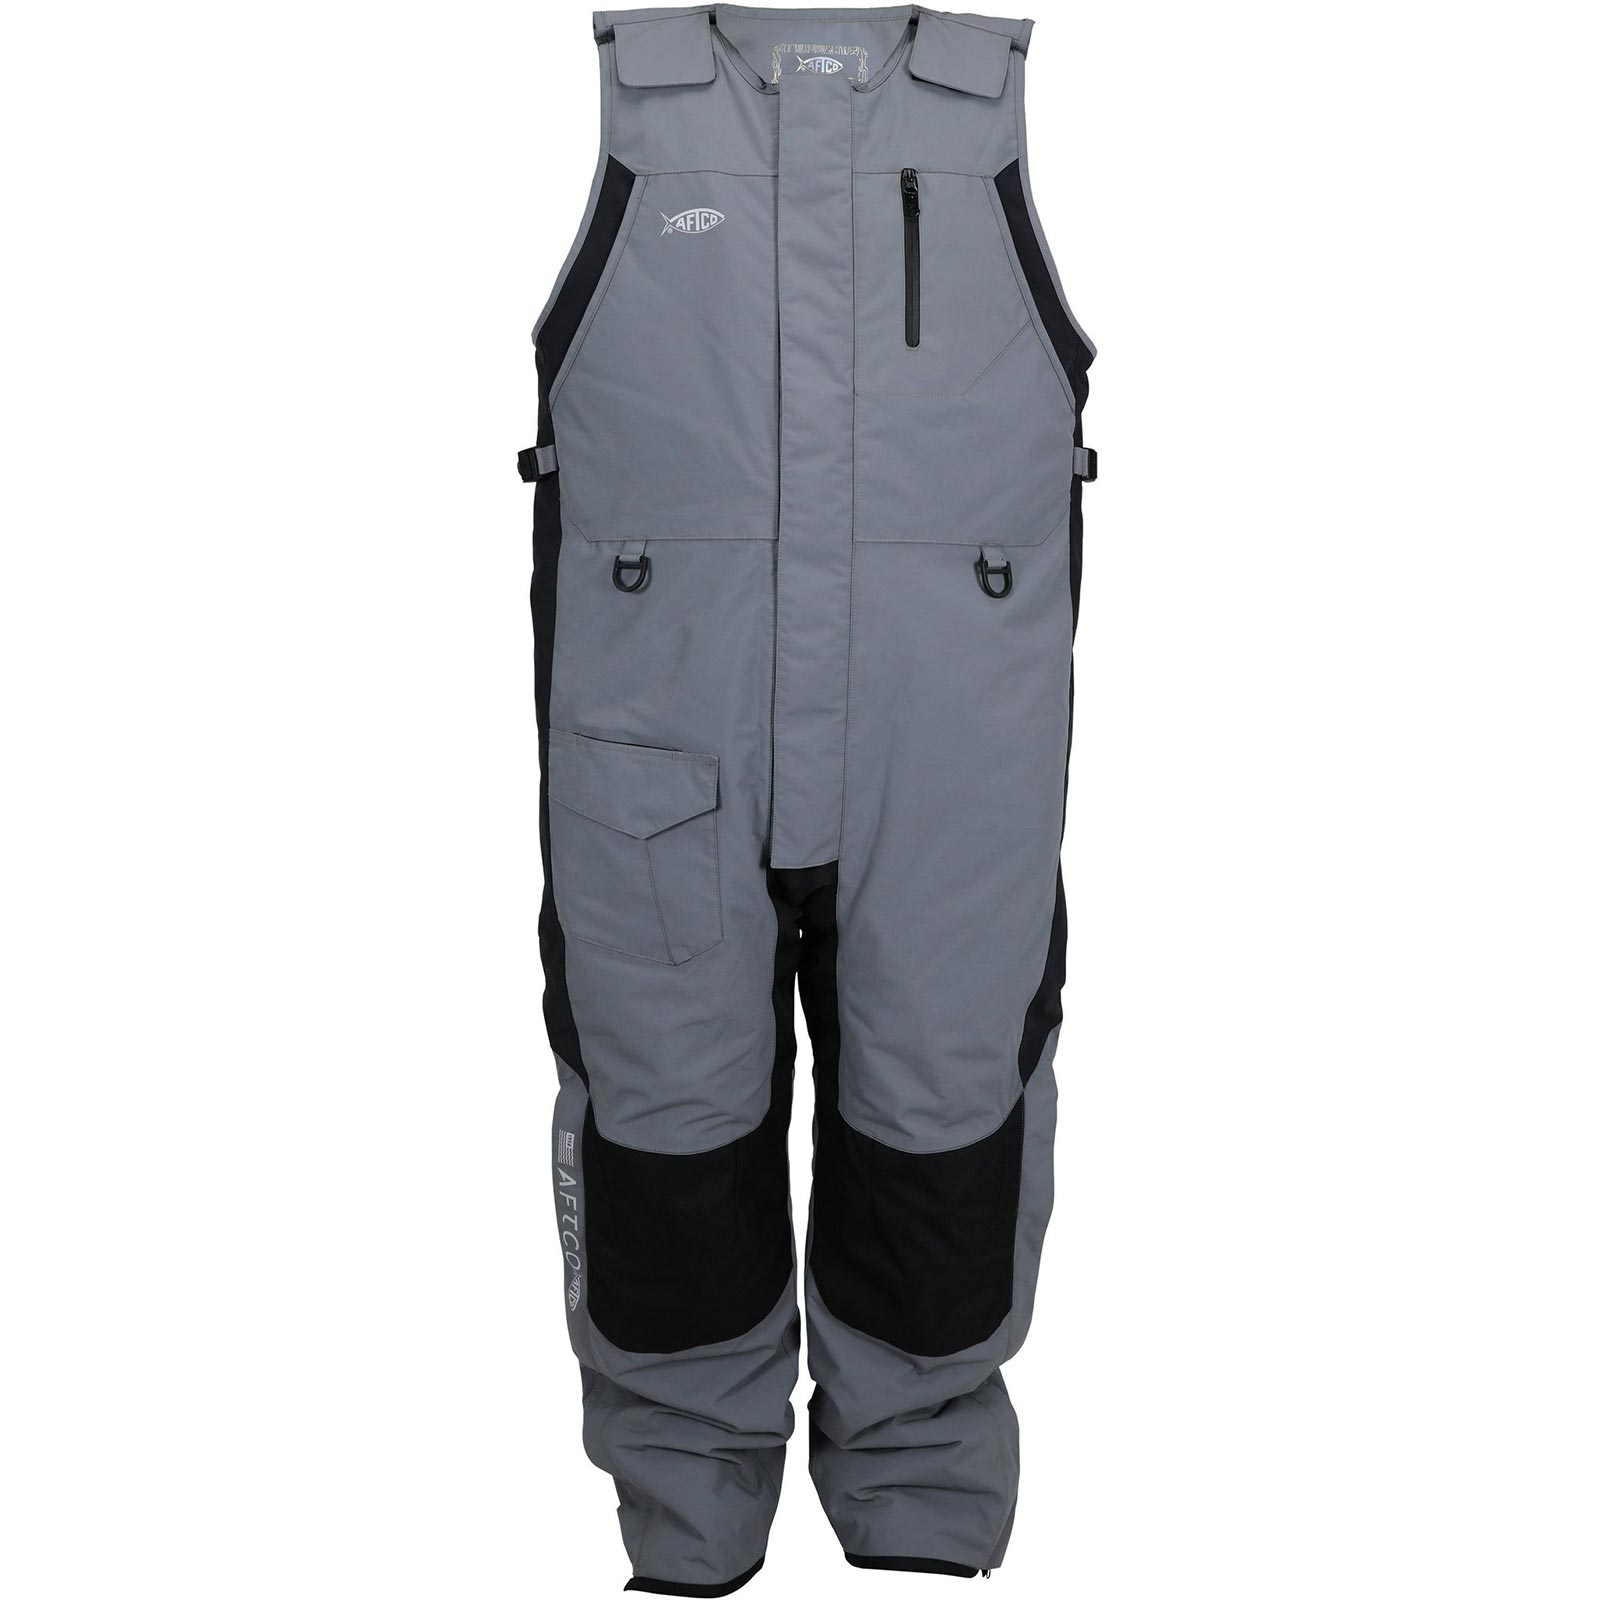 AFTCO Men's Hydronaut Insulated Bib